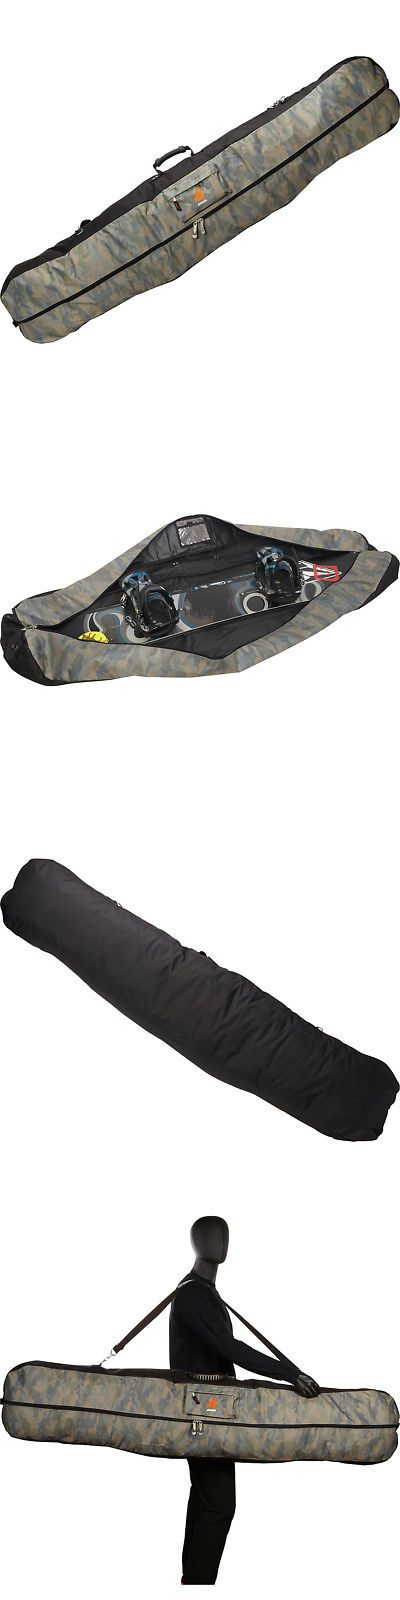 Bags and Backpacks 21229: Athalon Otis Snowboard Bag 7 Colors Ski And Snowboard Bag New -> BUY IT NOW ONLY: $60 on eBay!